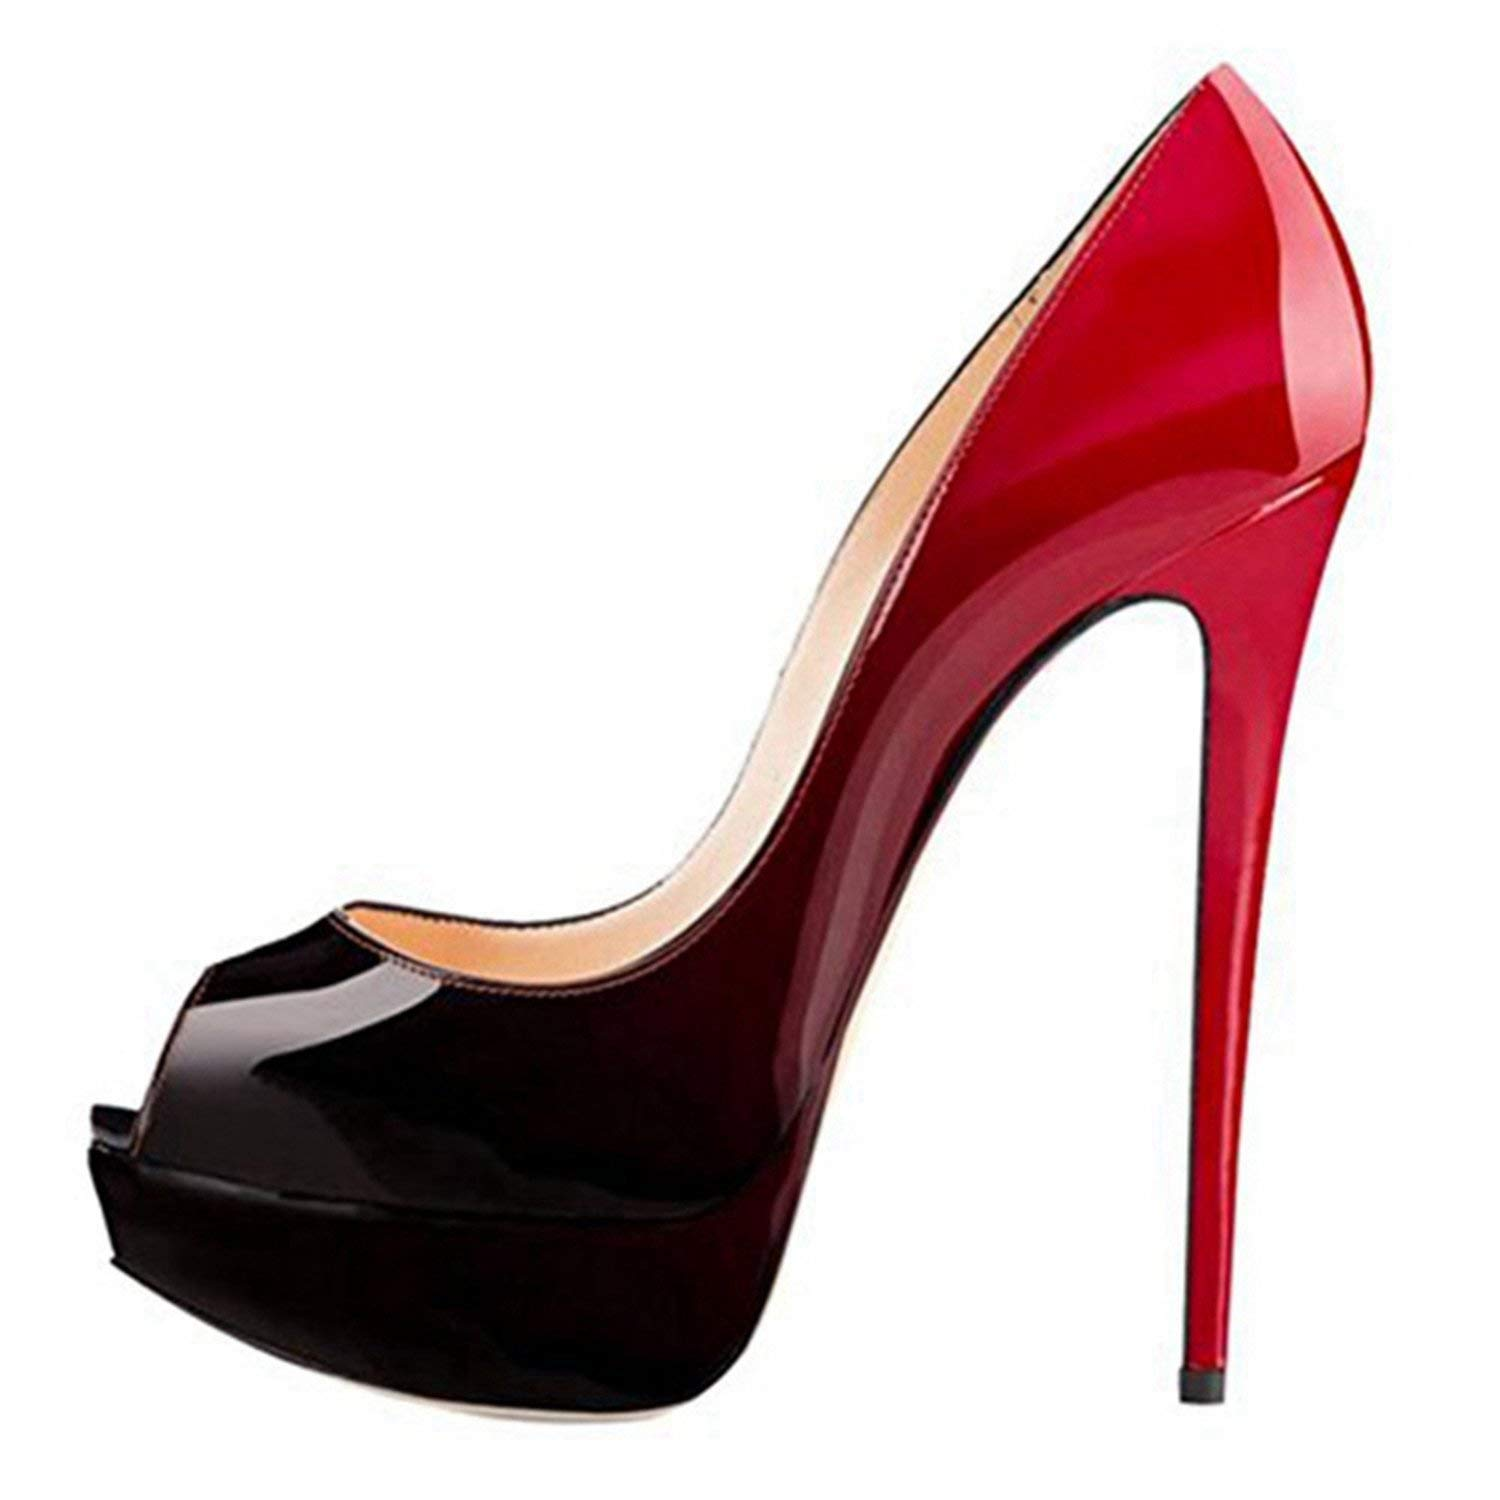 Black red Women Super high Heel Platform Pumps Peep Toe Party Nightclub shoes Thin Heels Black Red